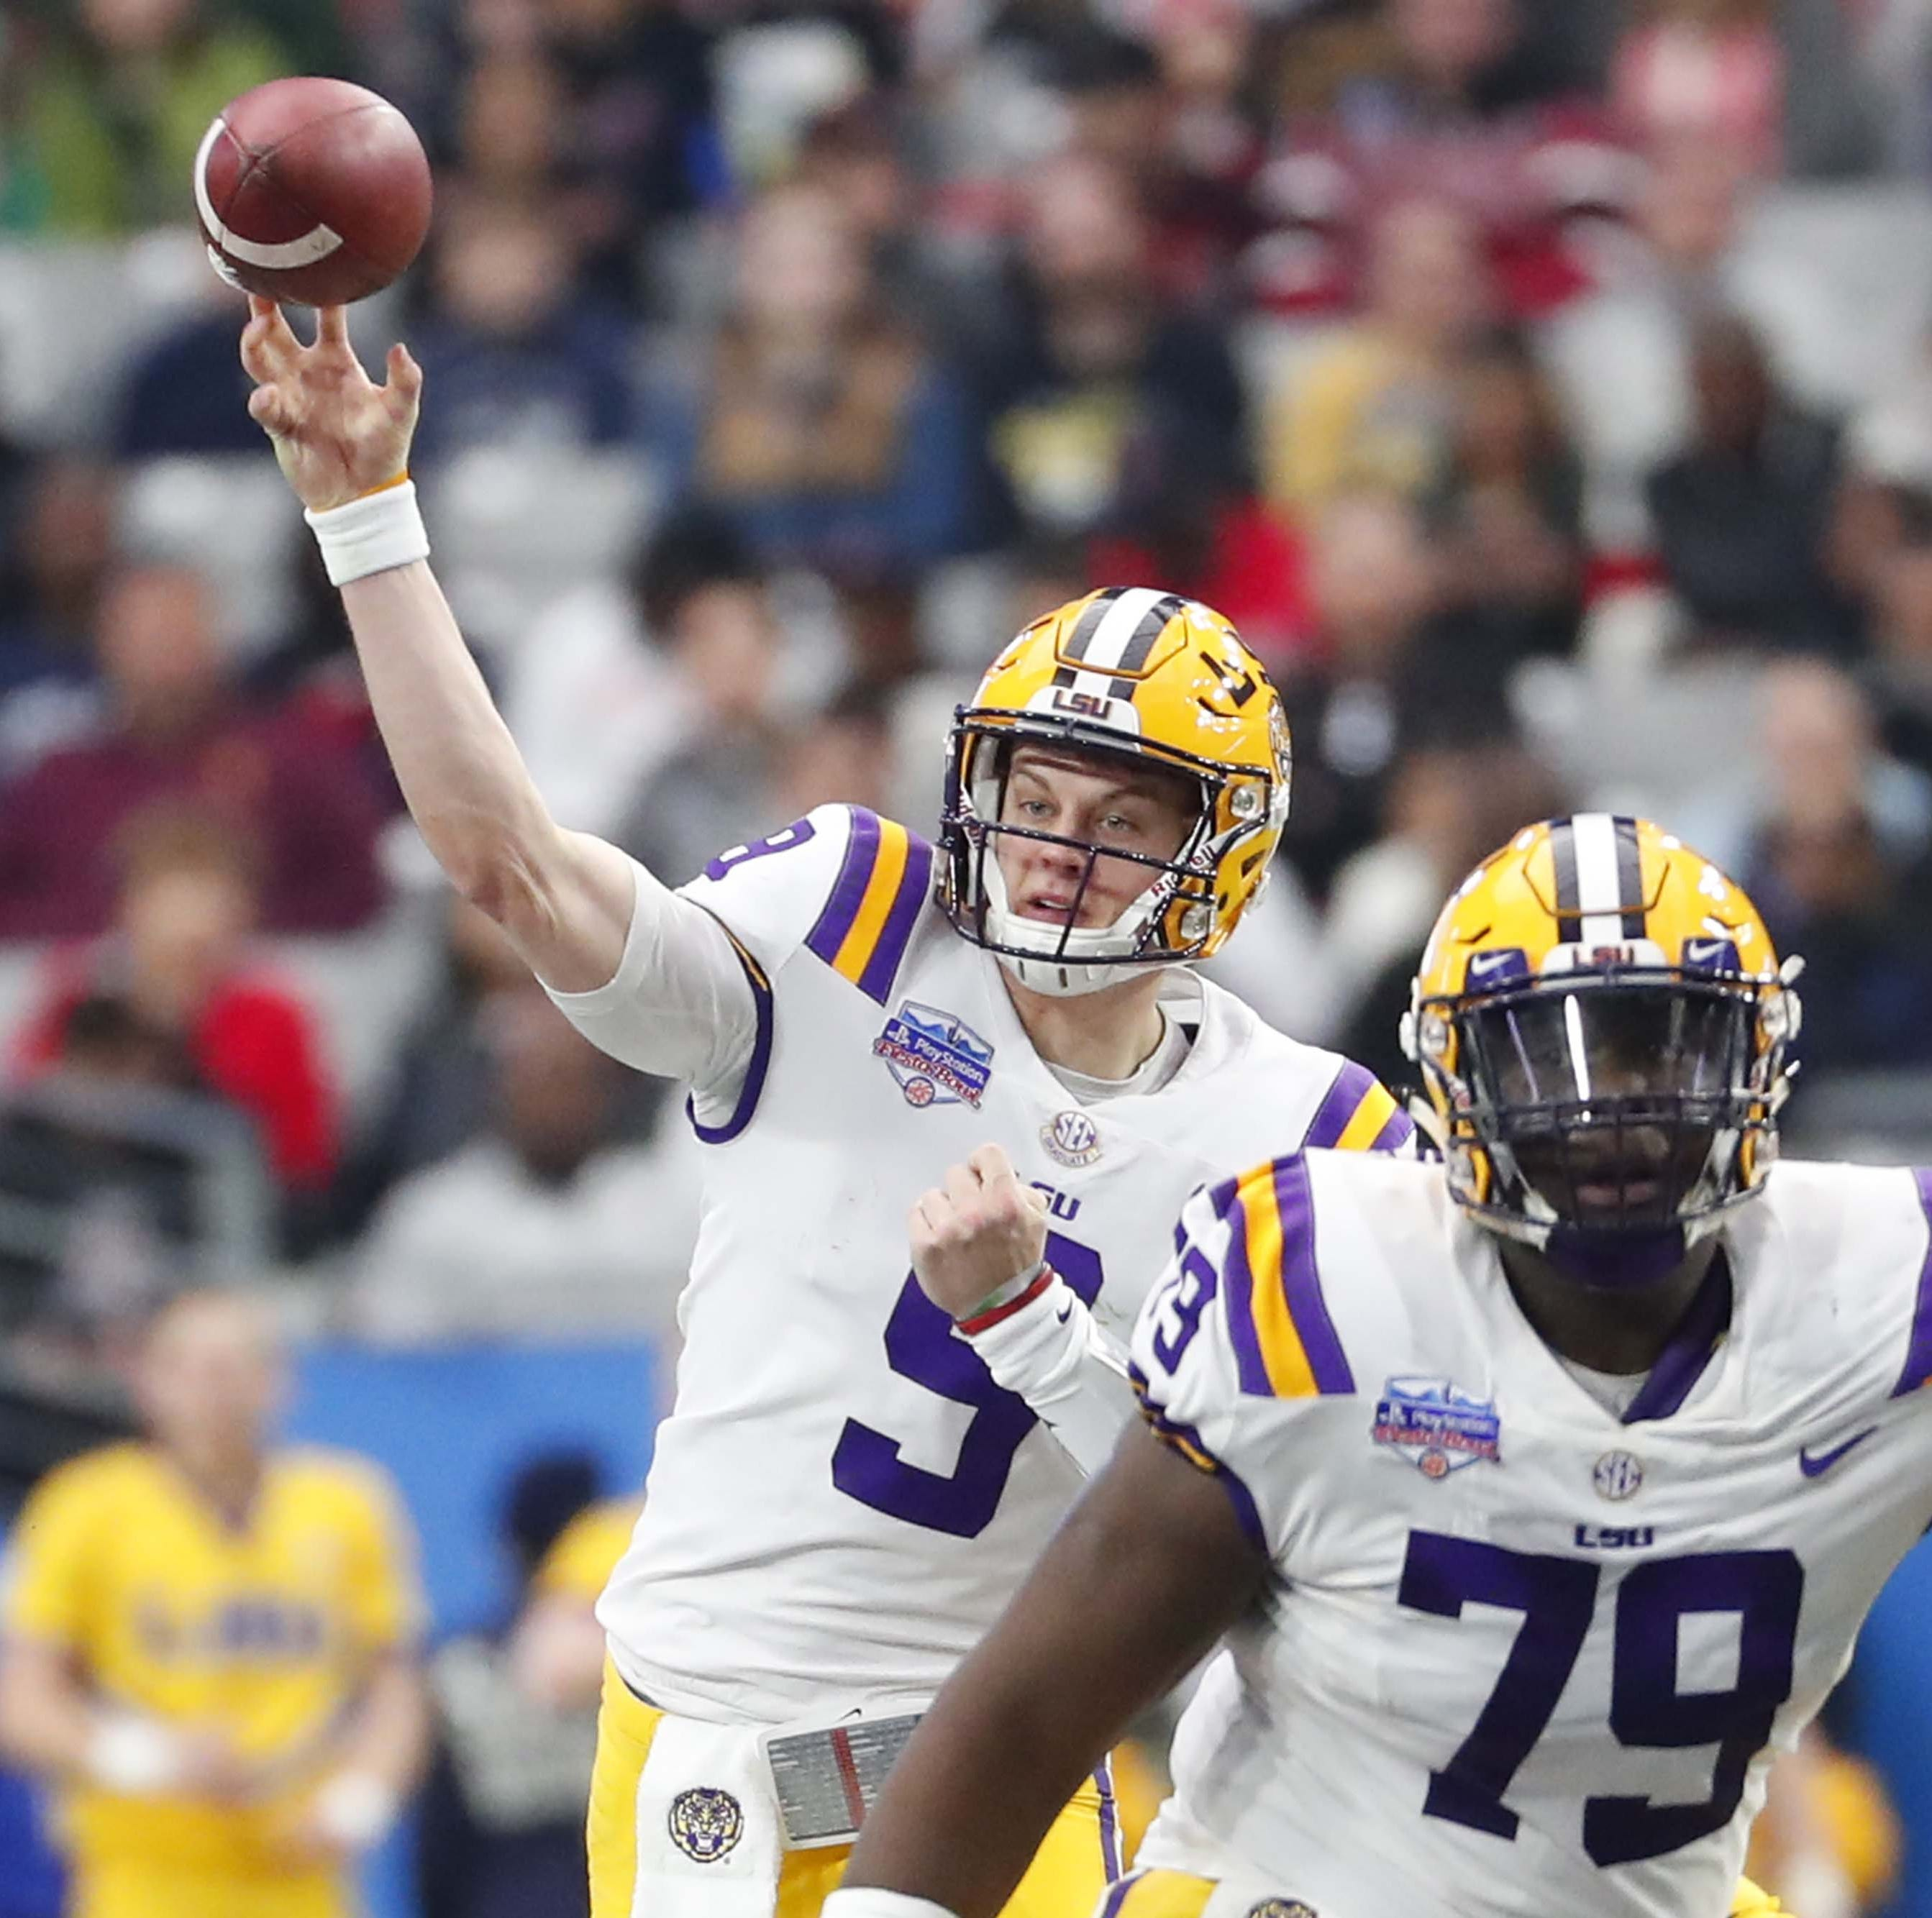 One thing is certain as LSU ends spring drills with spring game: It is Joe Burrow's team